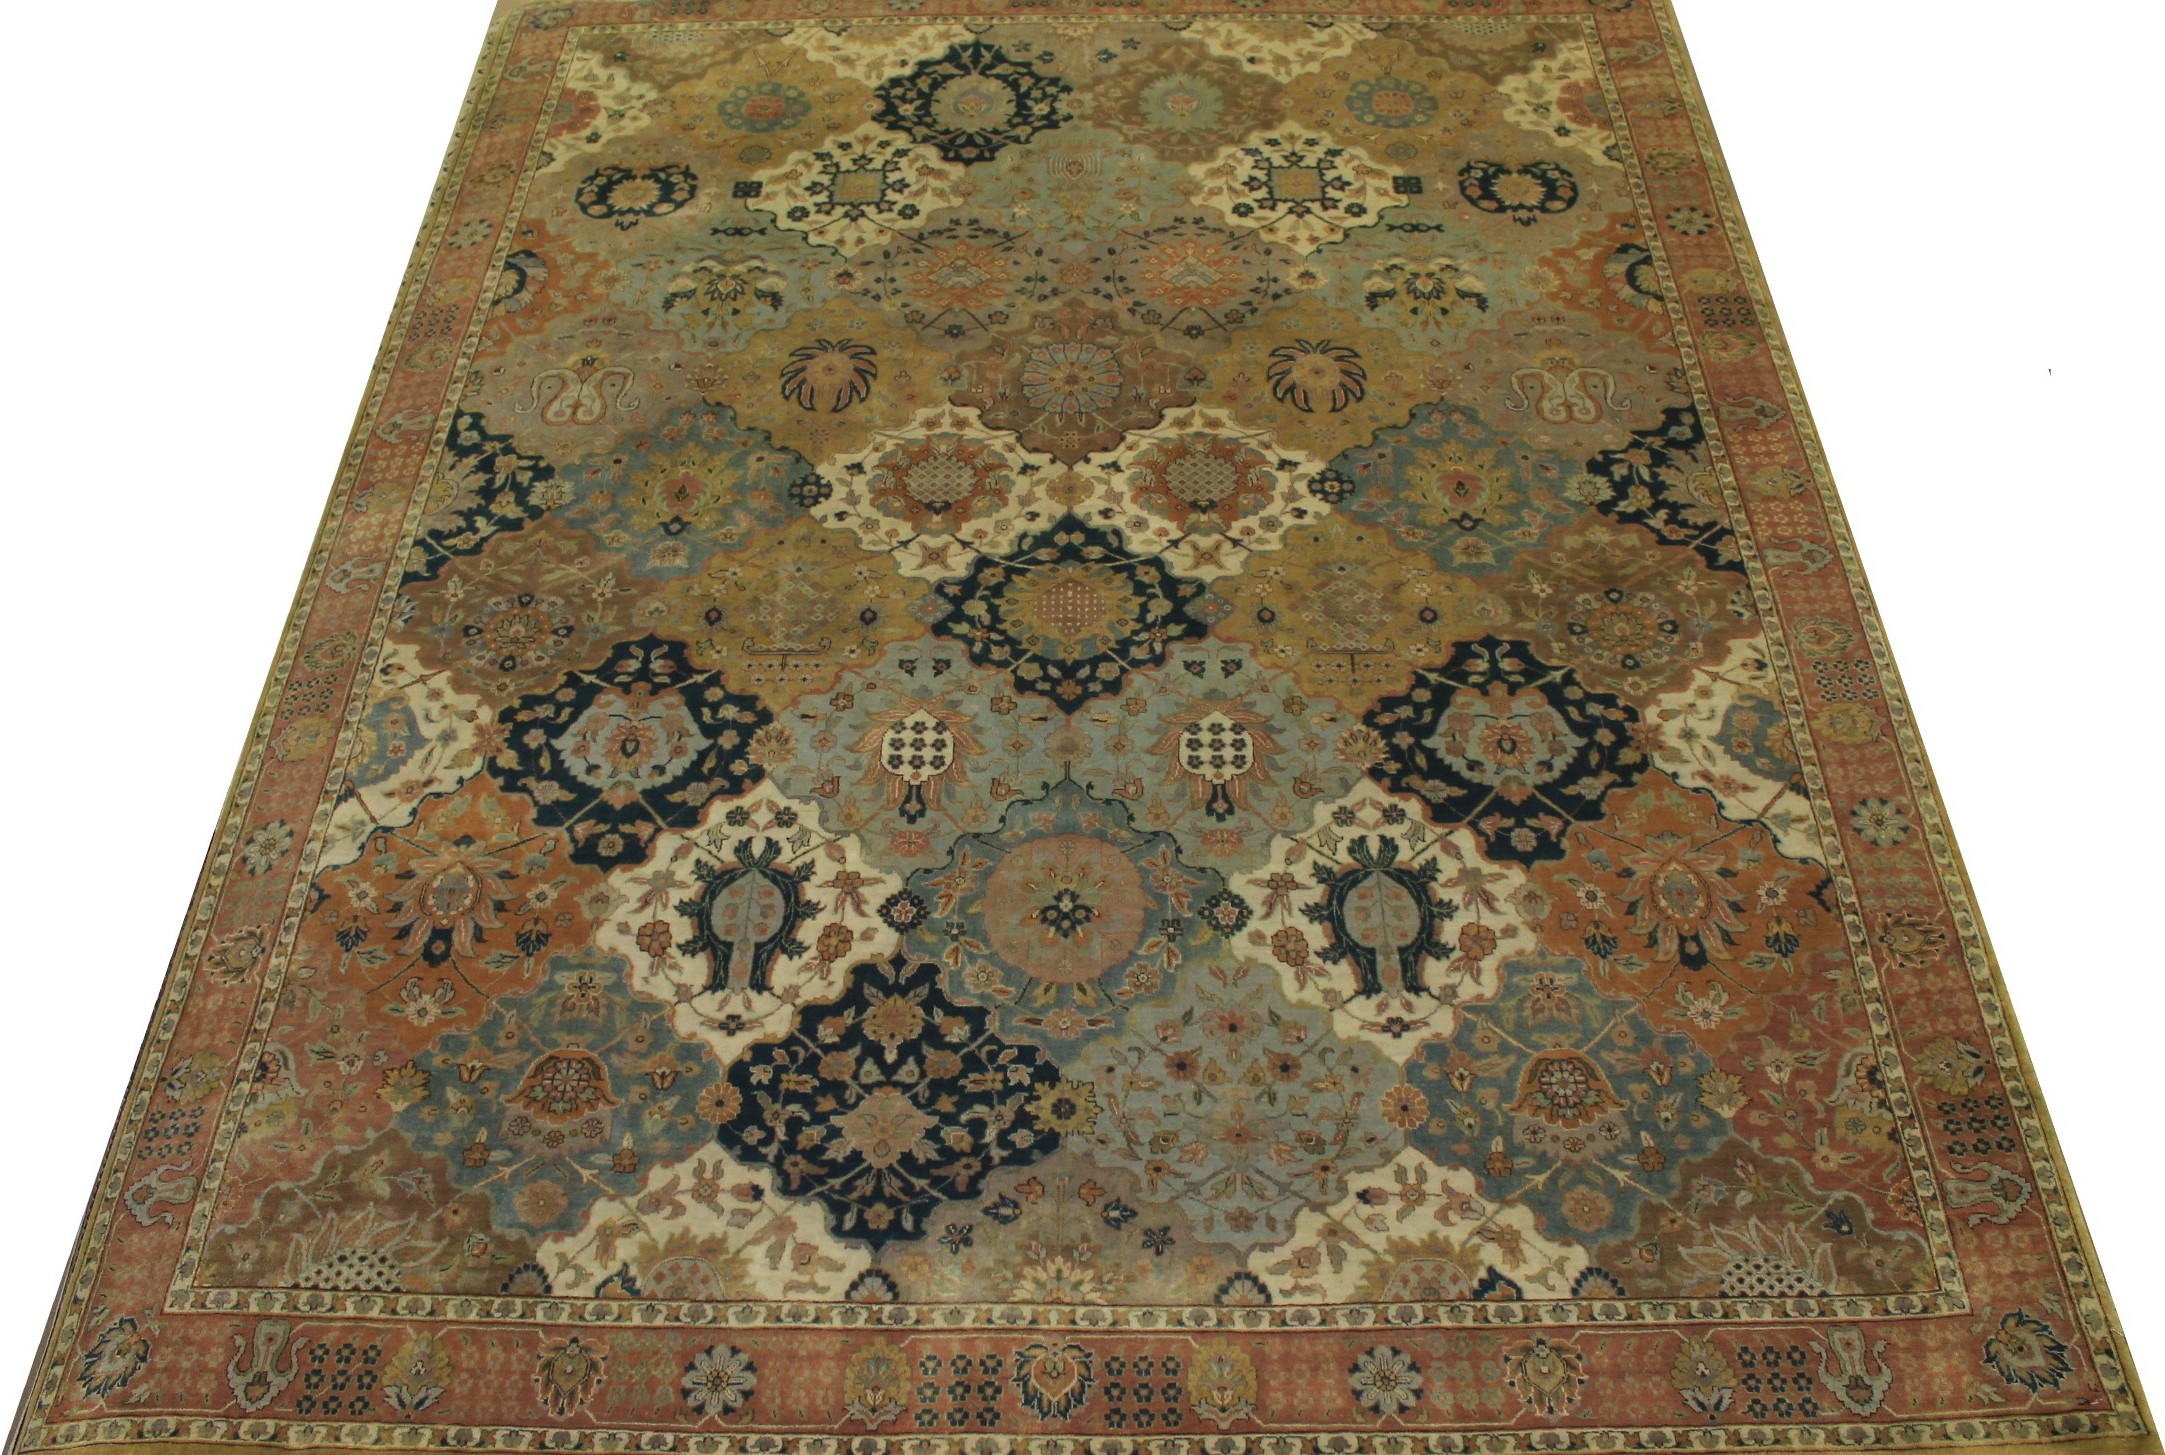 8x10 Antique Revival Hand Knotted Wool Area Rug - MR12083